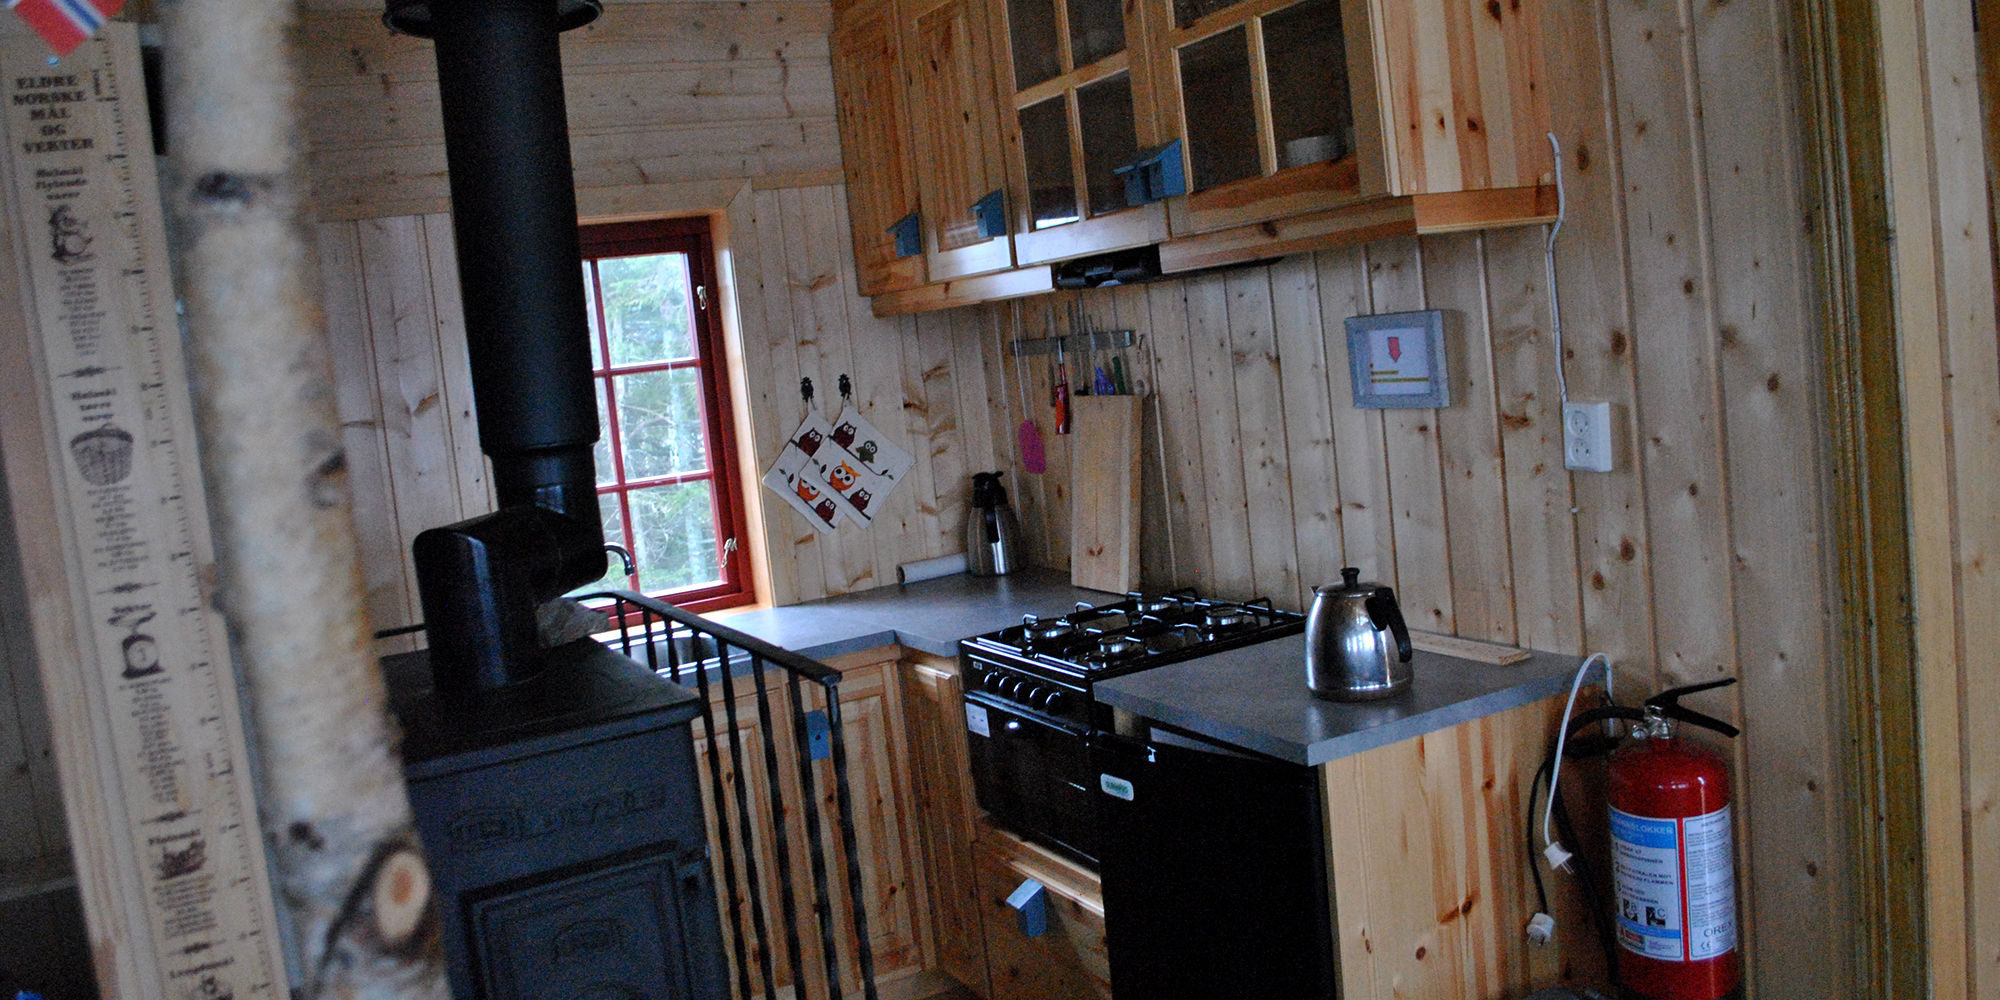 The Kitchen at Spettspiret cabin - the cabin nestled in the treetops in Inderøy. Copyright: Letnes Gård